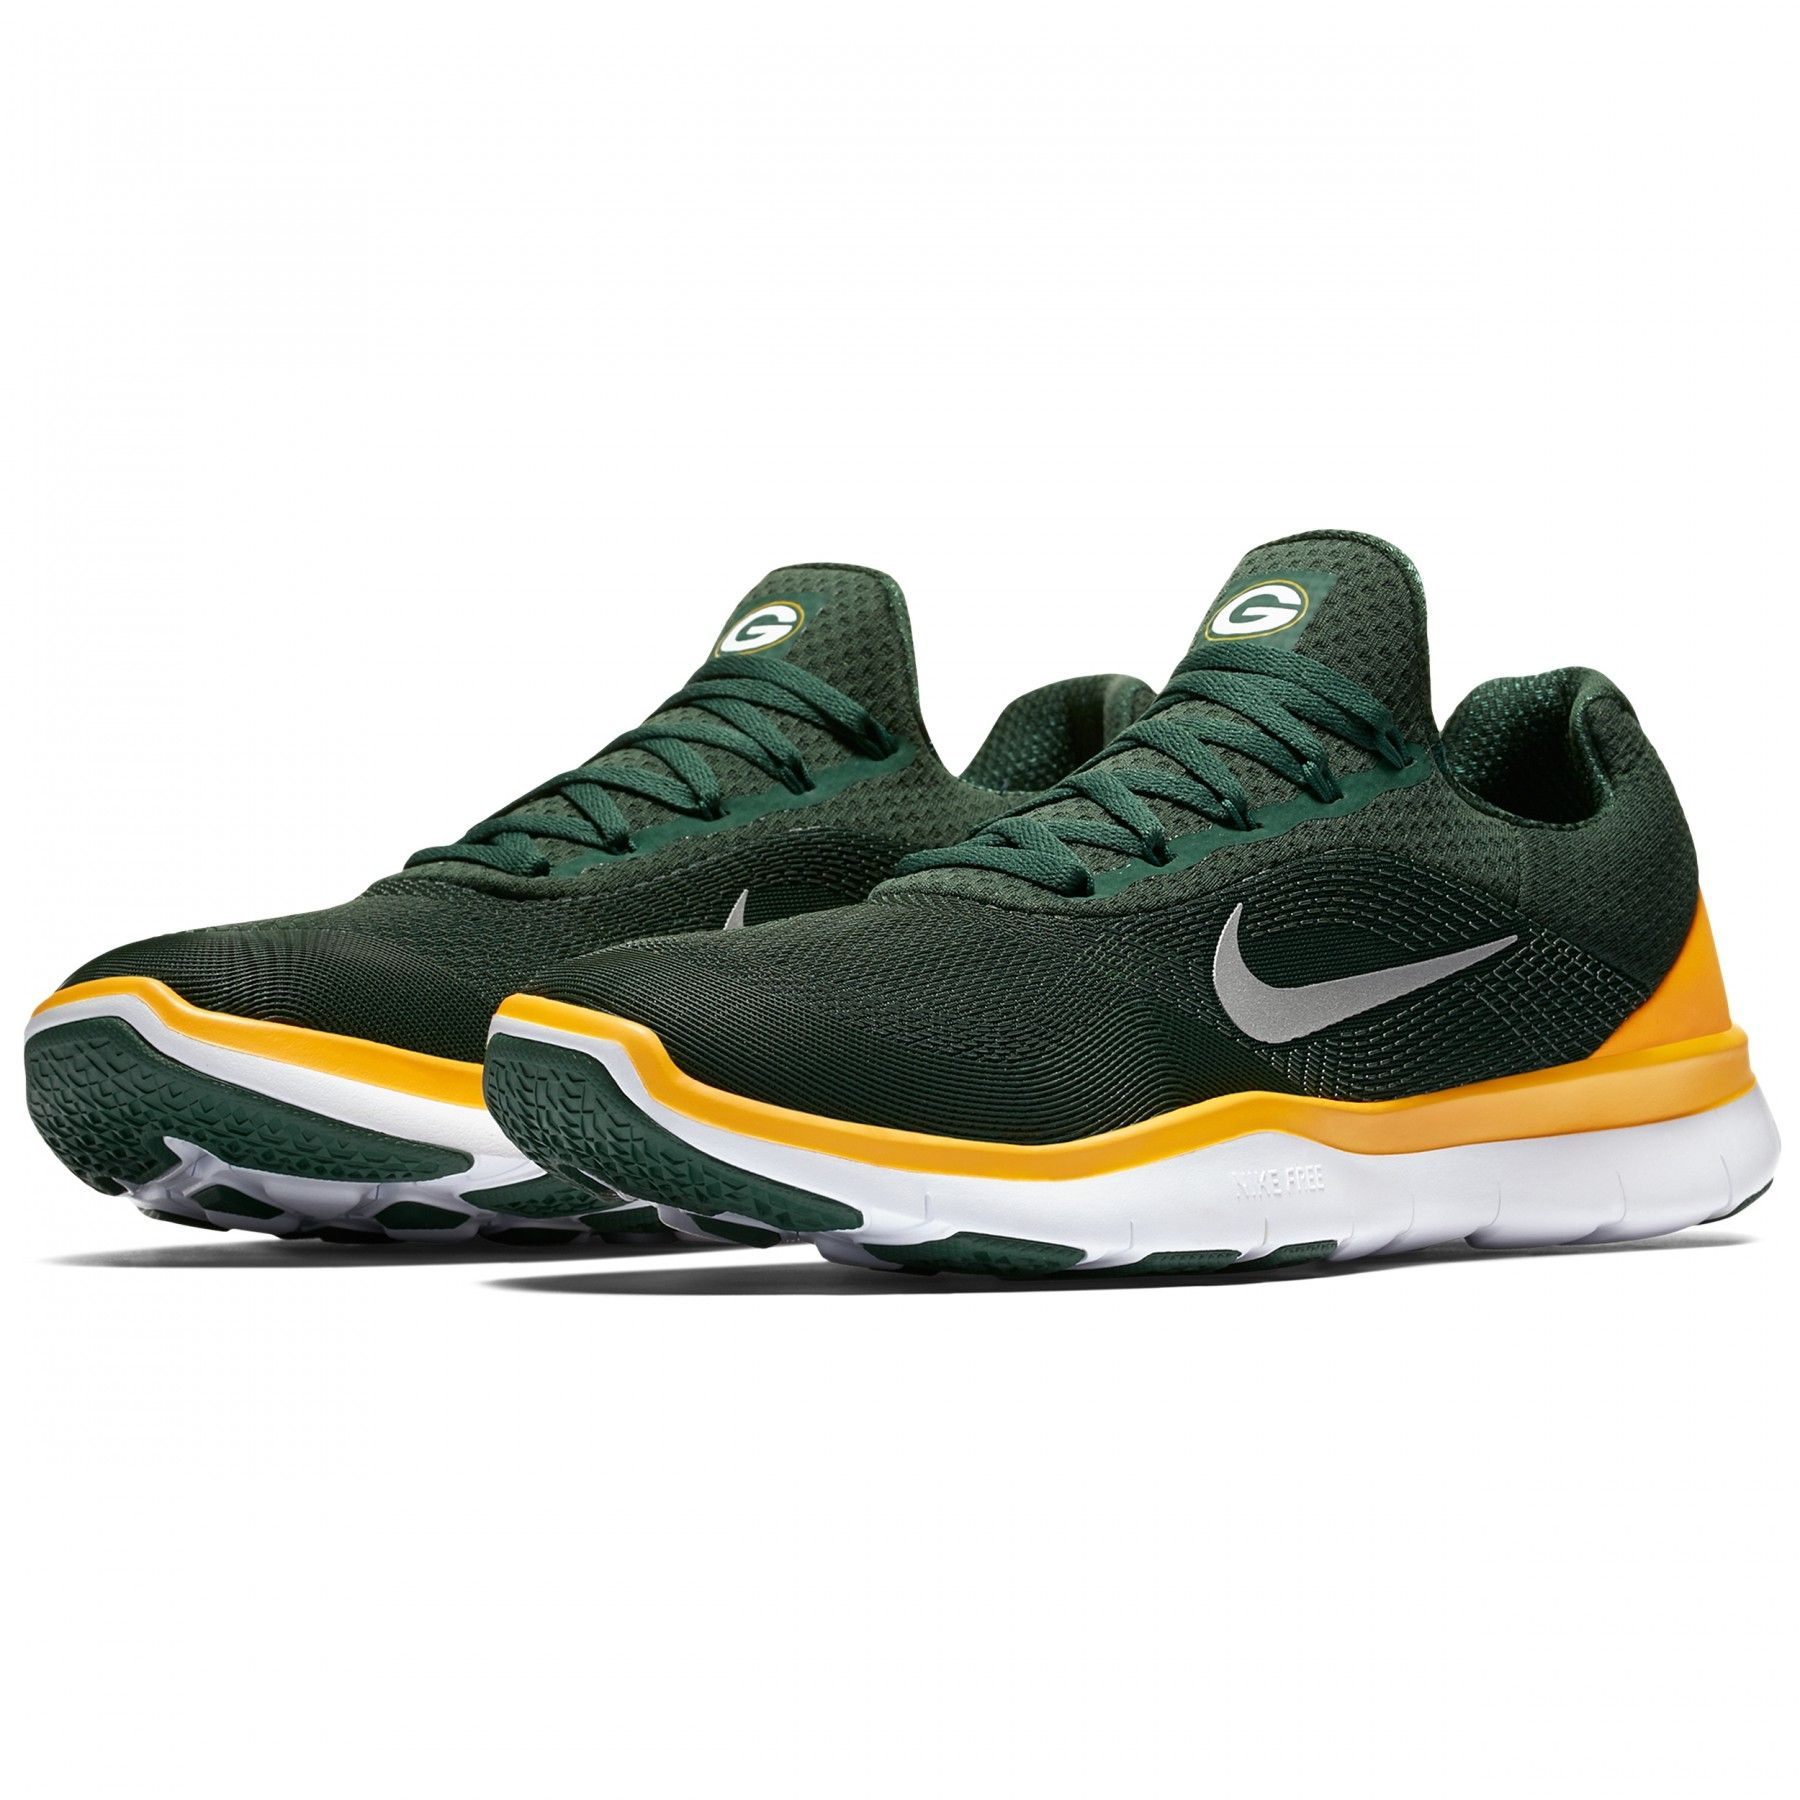 Pin By Tim Sauers On Wishlist Nike Free Trainer Steelers Outfit Pittsburgh Steelers Clothes